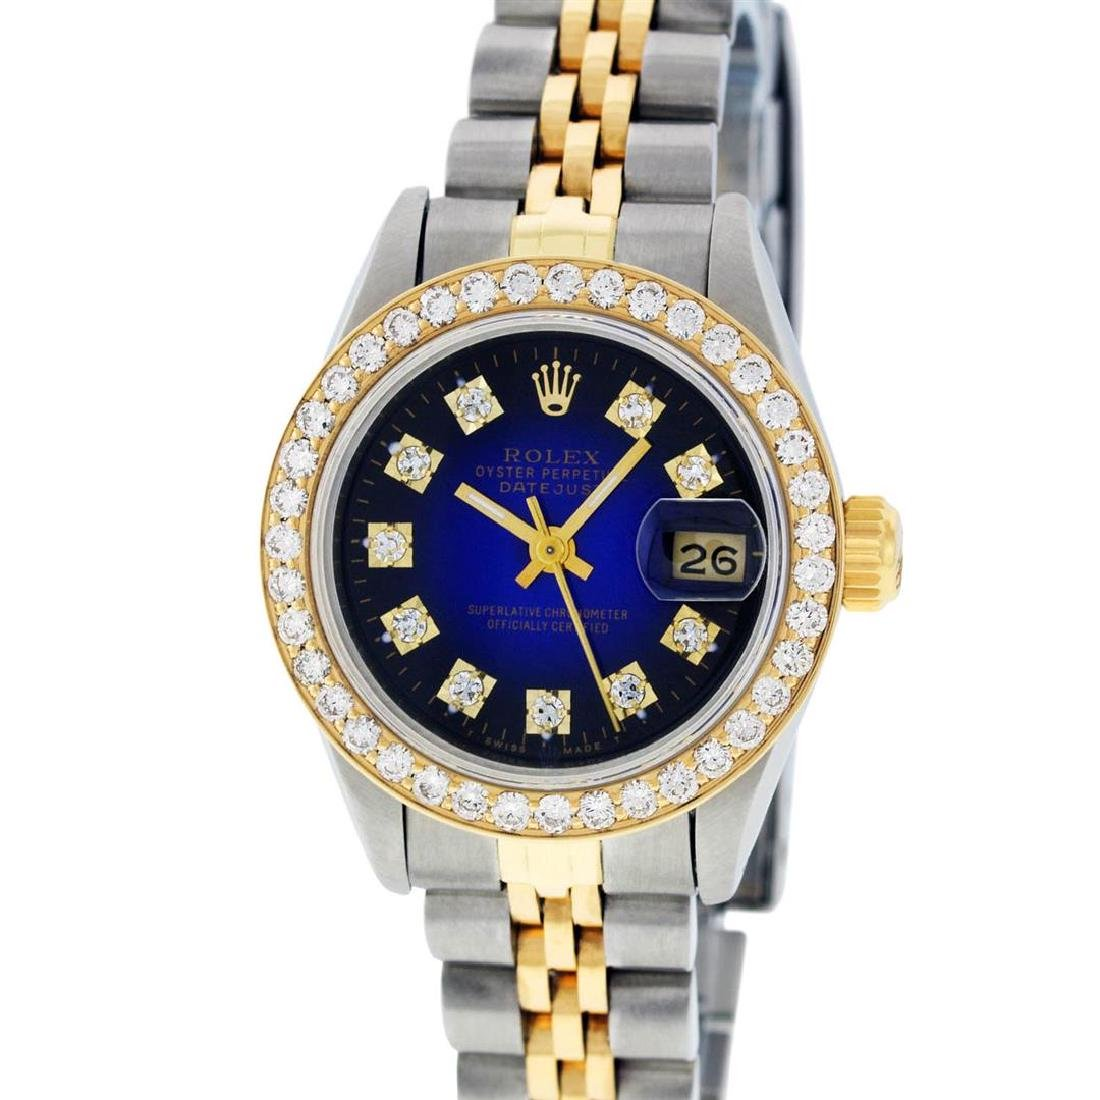 Rolex Ladies 2 Tone 14K Blue Vignette VS Diamond - 2